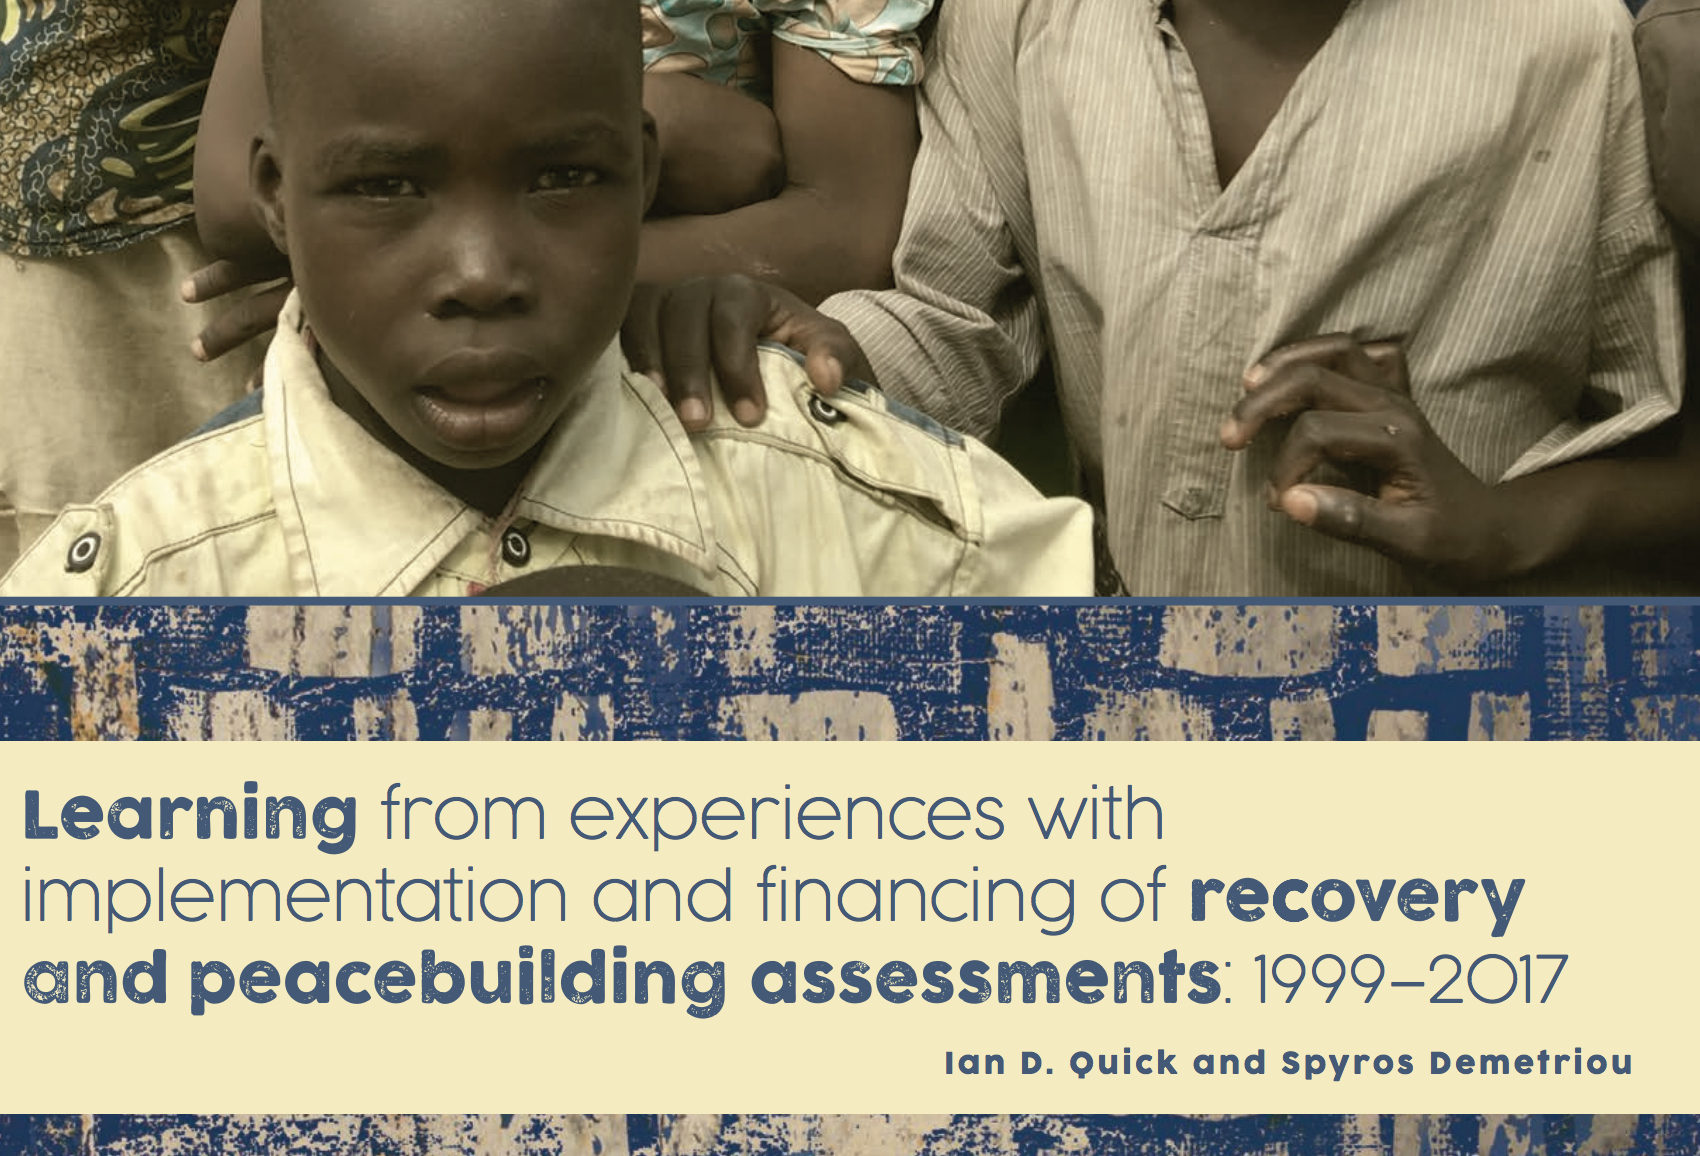 Effective implementation of Recovery & Peacebuilding Assessments